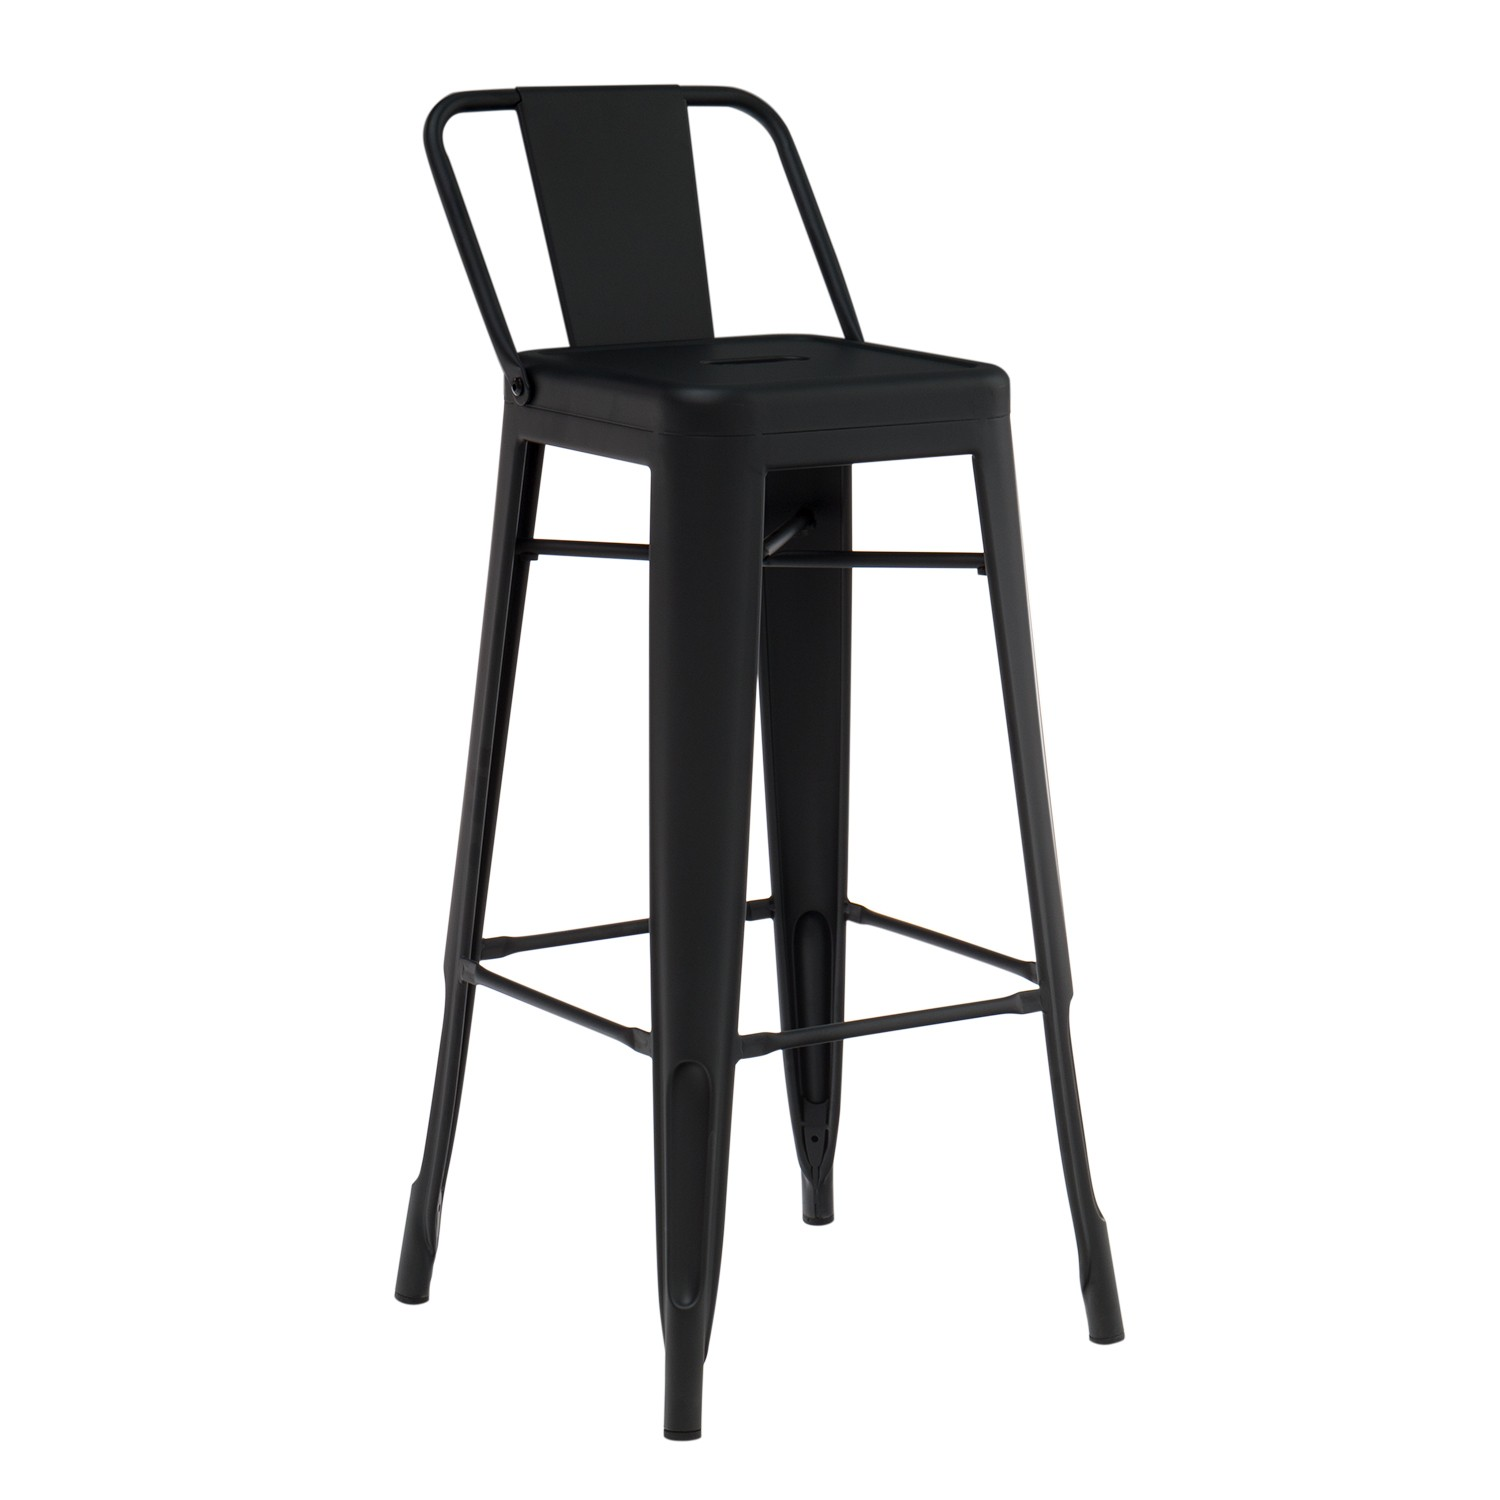 High stool with back in Matte LIX Steel, gallery image 1